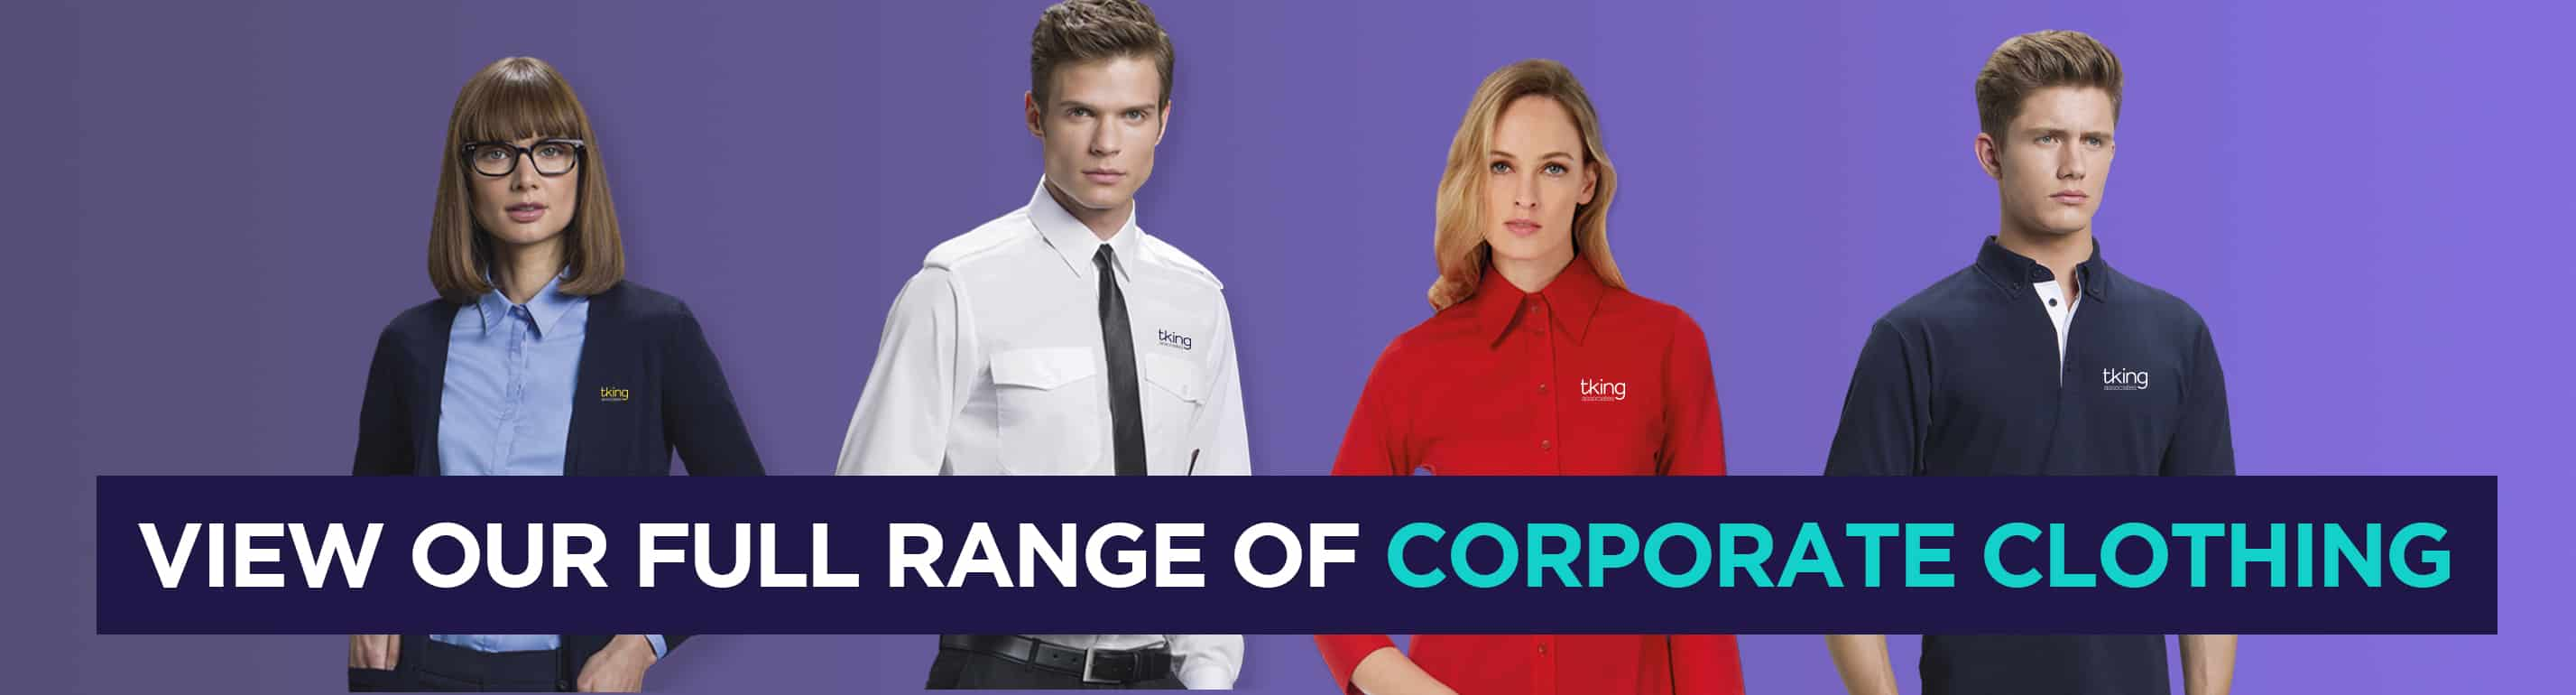 T King Associates Printed and Embroidered Corporate Clothing